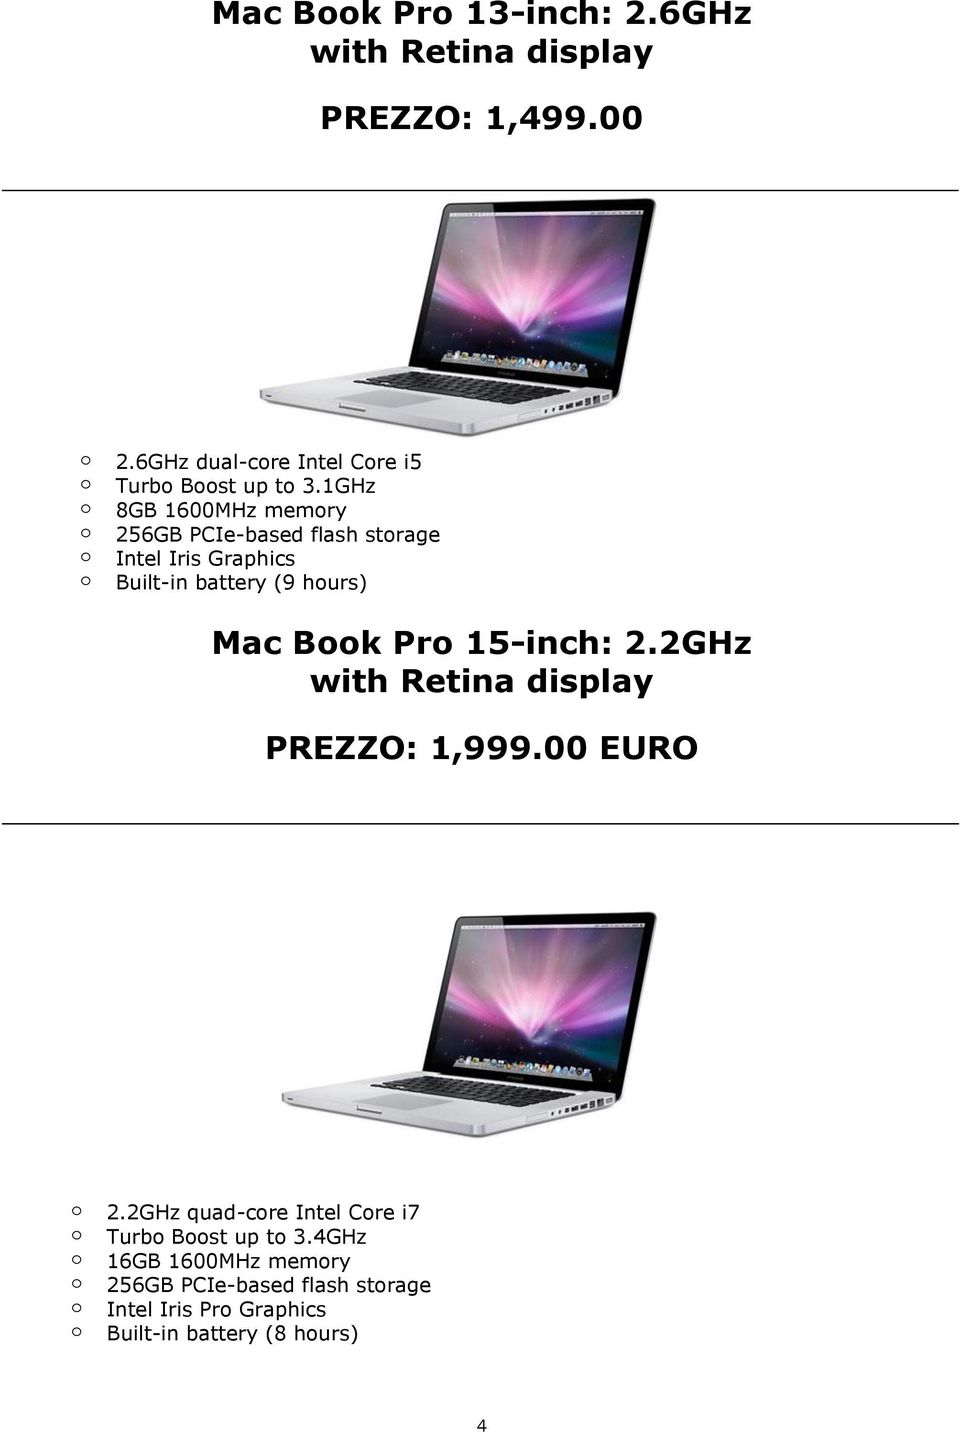 1GHz 8GB 1600MHz memry 256GB PCIe-based flash strage Intel Iris Graphics Built-in battery (9 hurs) Mac Bk